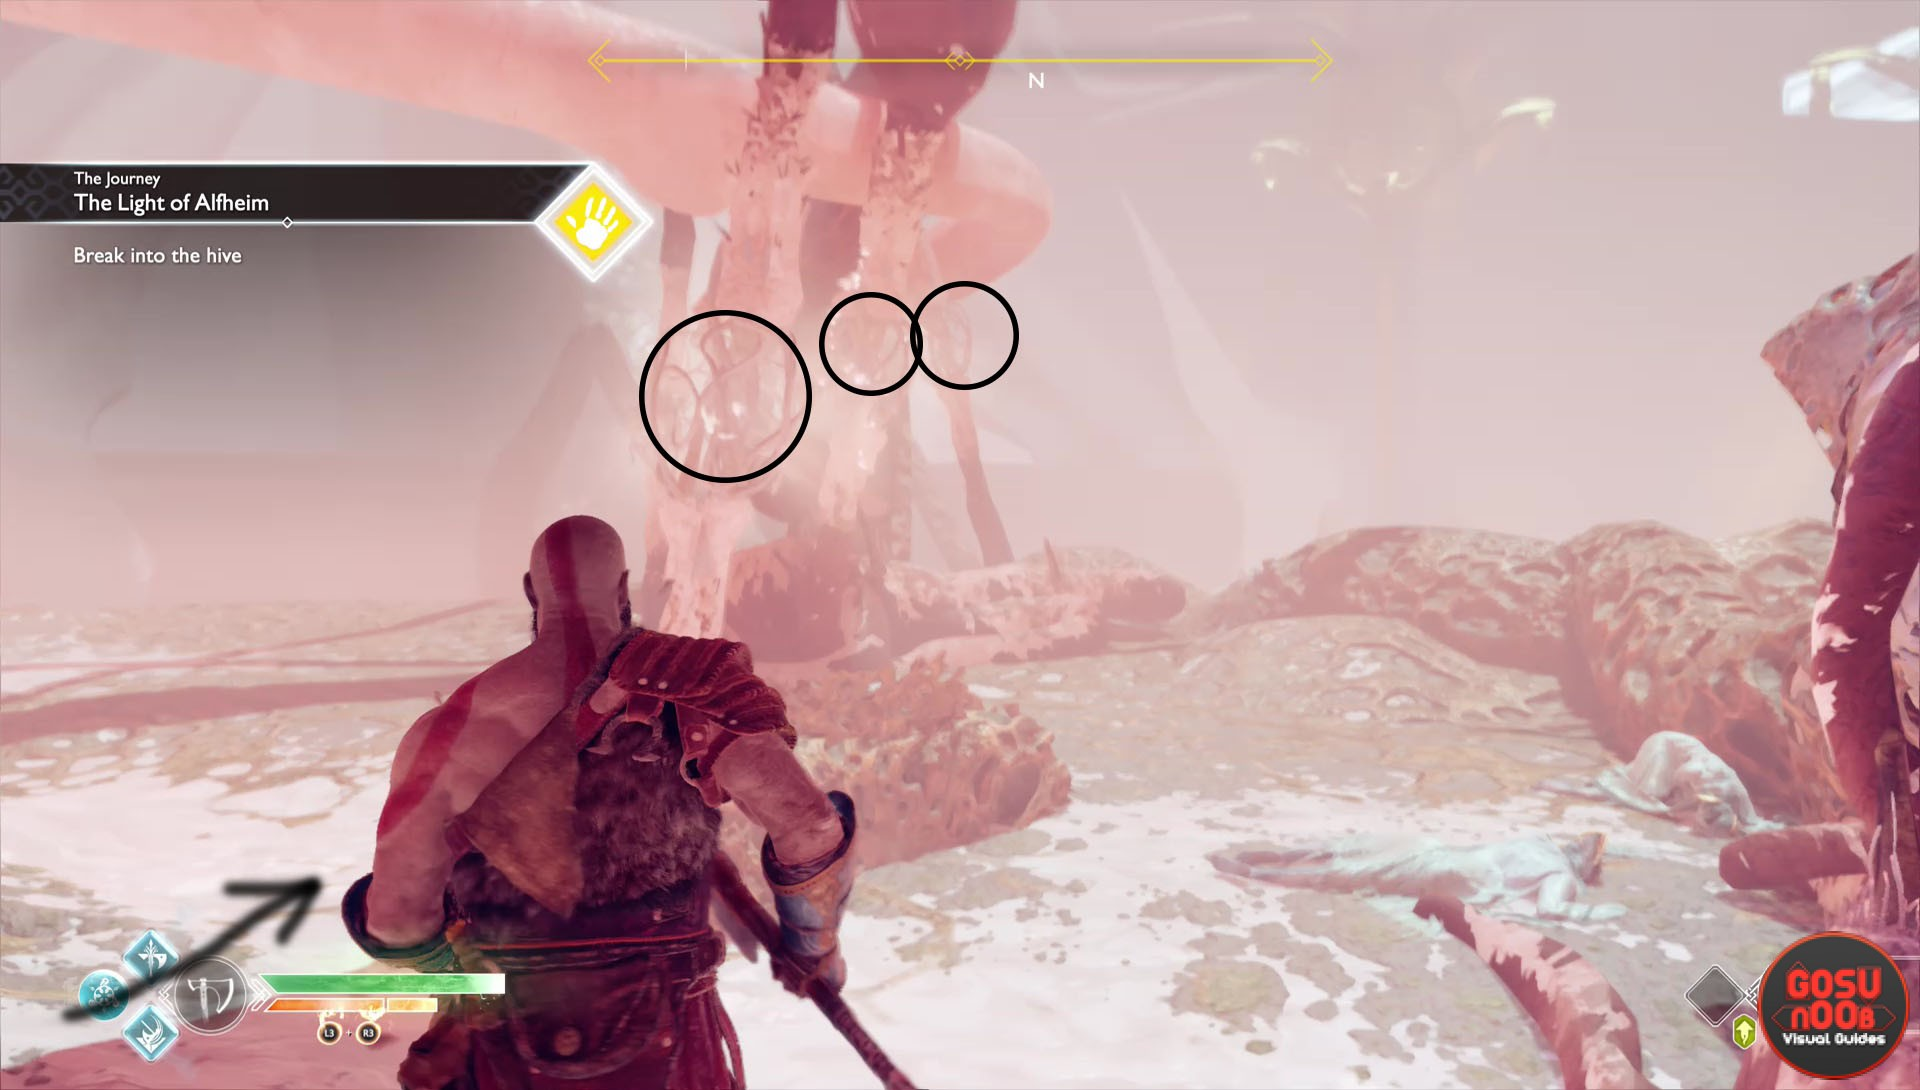 God Of War Alfheim Puzzle Break Into The Hive By Removing